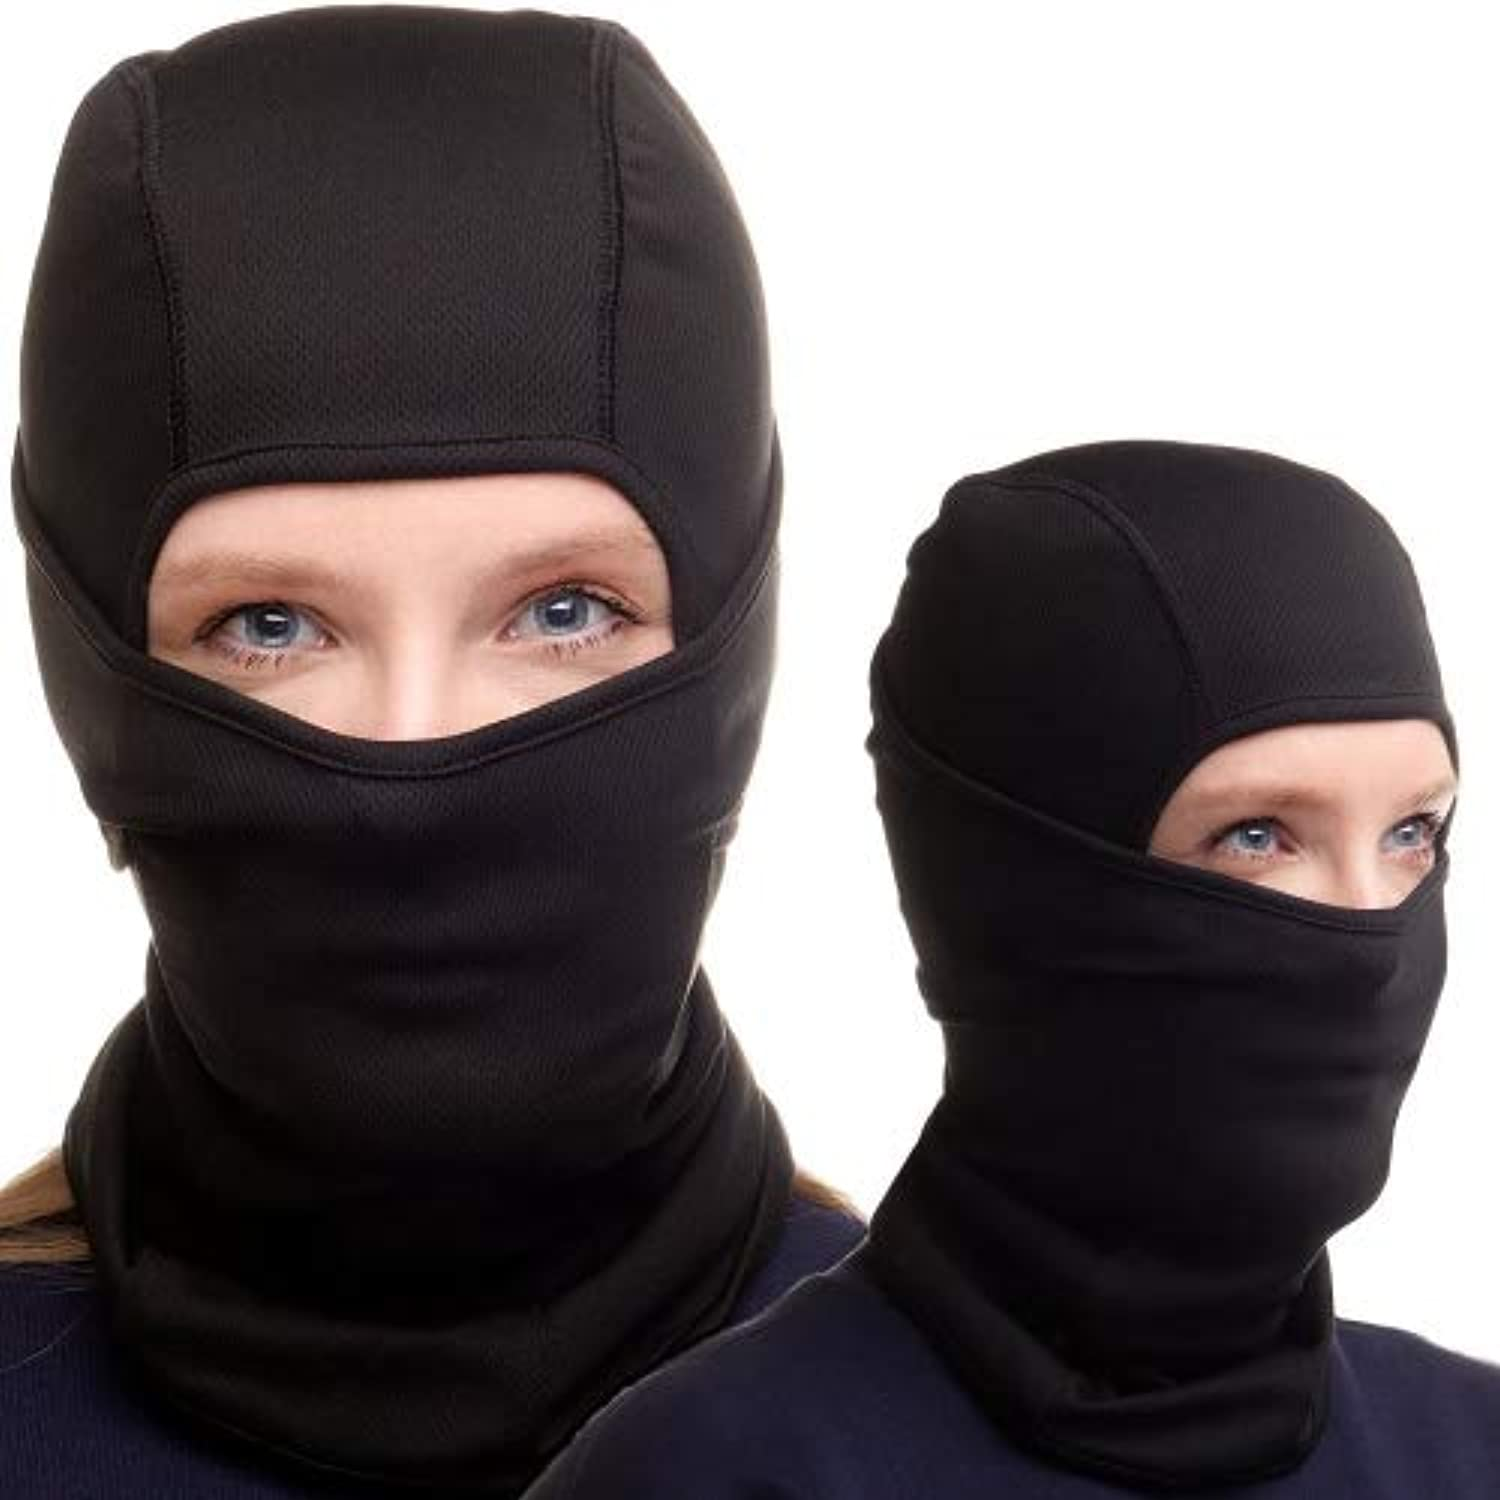 Proven Platinum Black Balaclava - Face Mask for Ski and Snowboard - For Women and Men + Free Gift